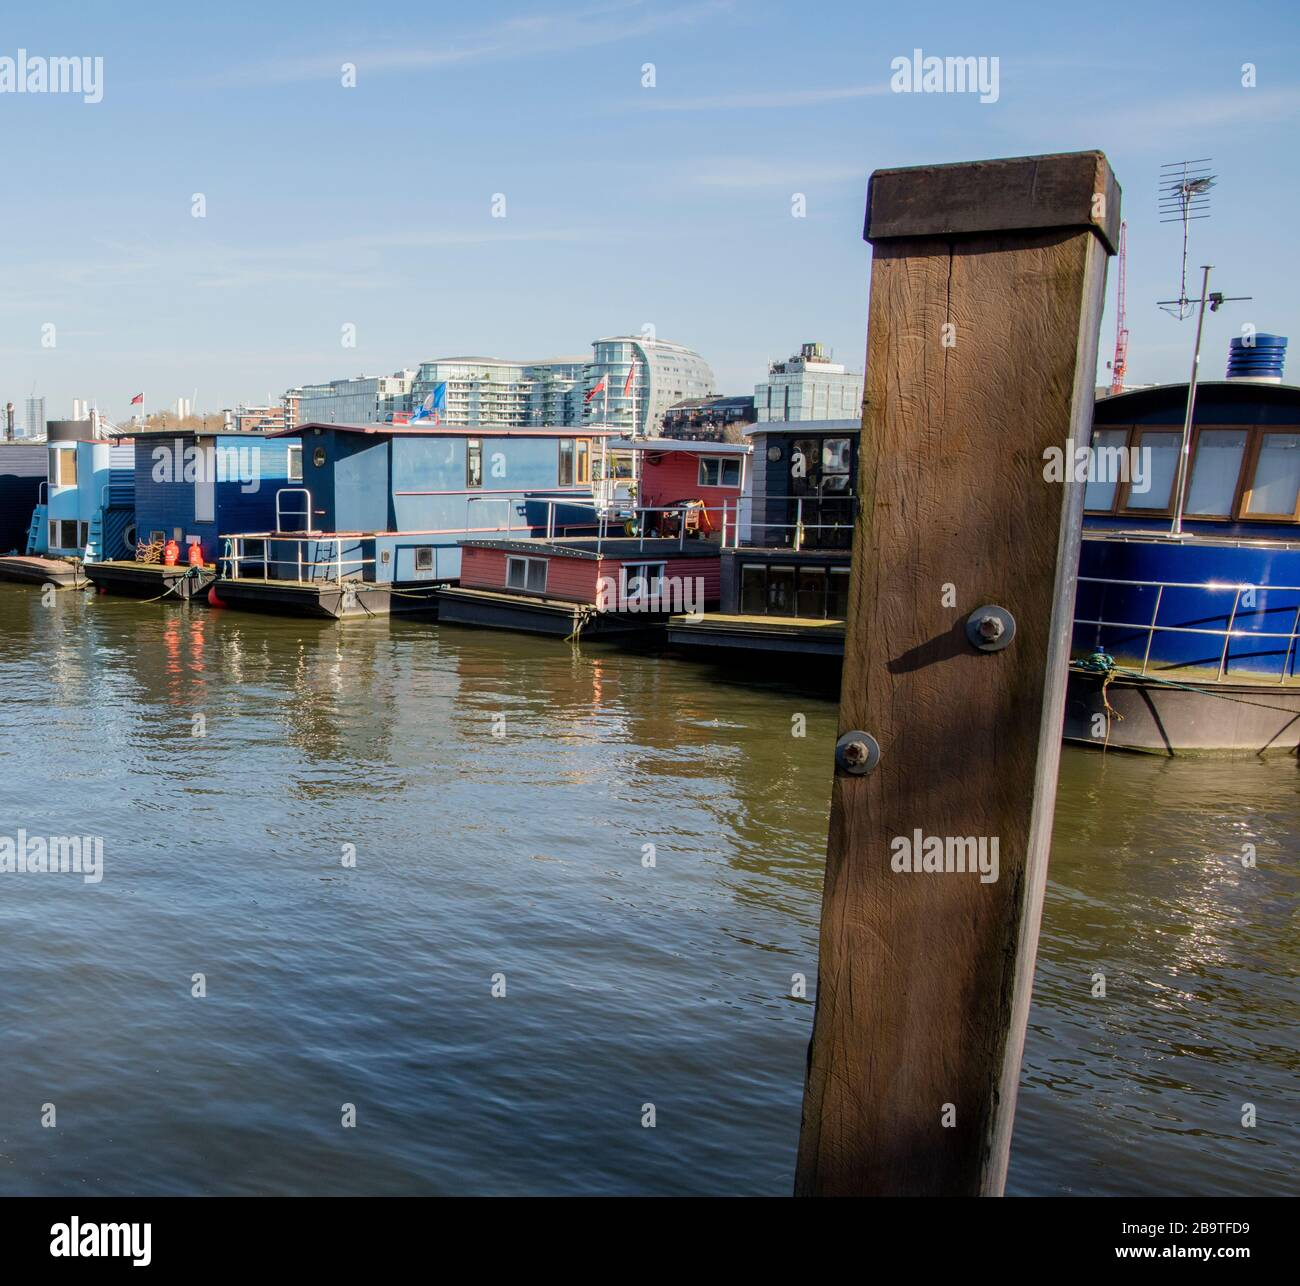 Houseboats Moored On Cheyne Wharf On The River Thames By Chelsea Embankment Next To Cheyne Walk Chelsea London Stock Photo Alamy